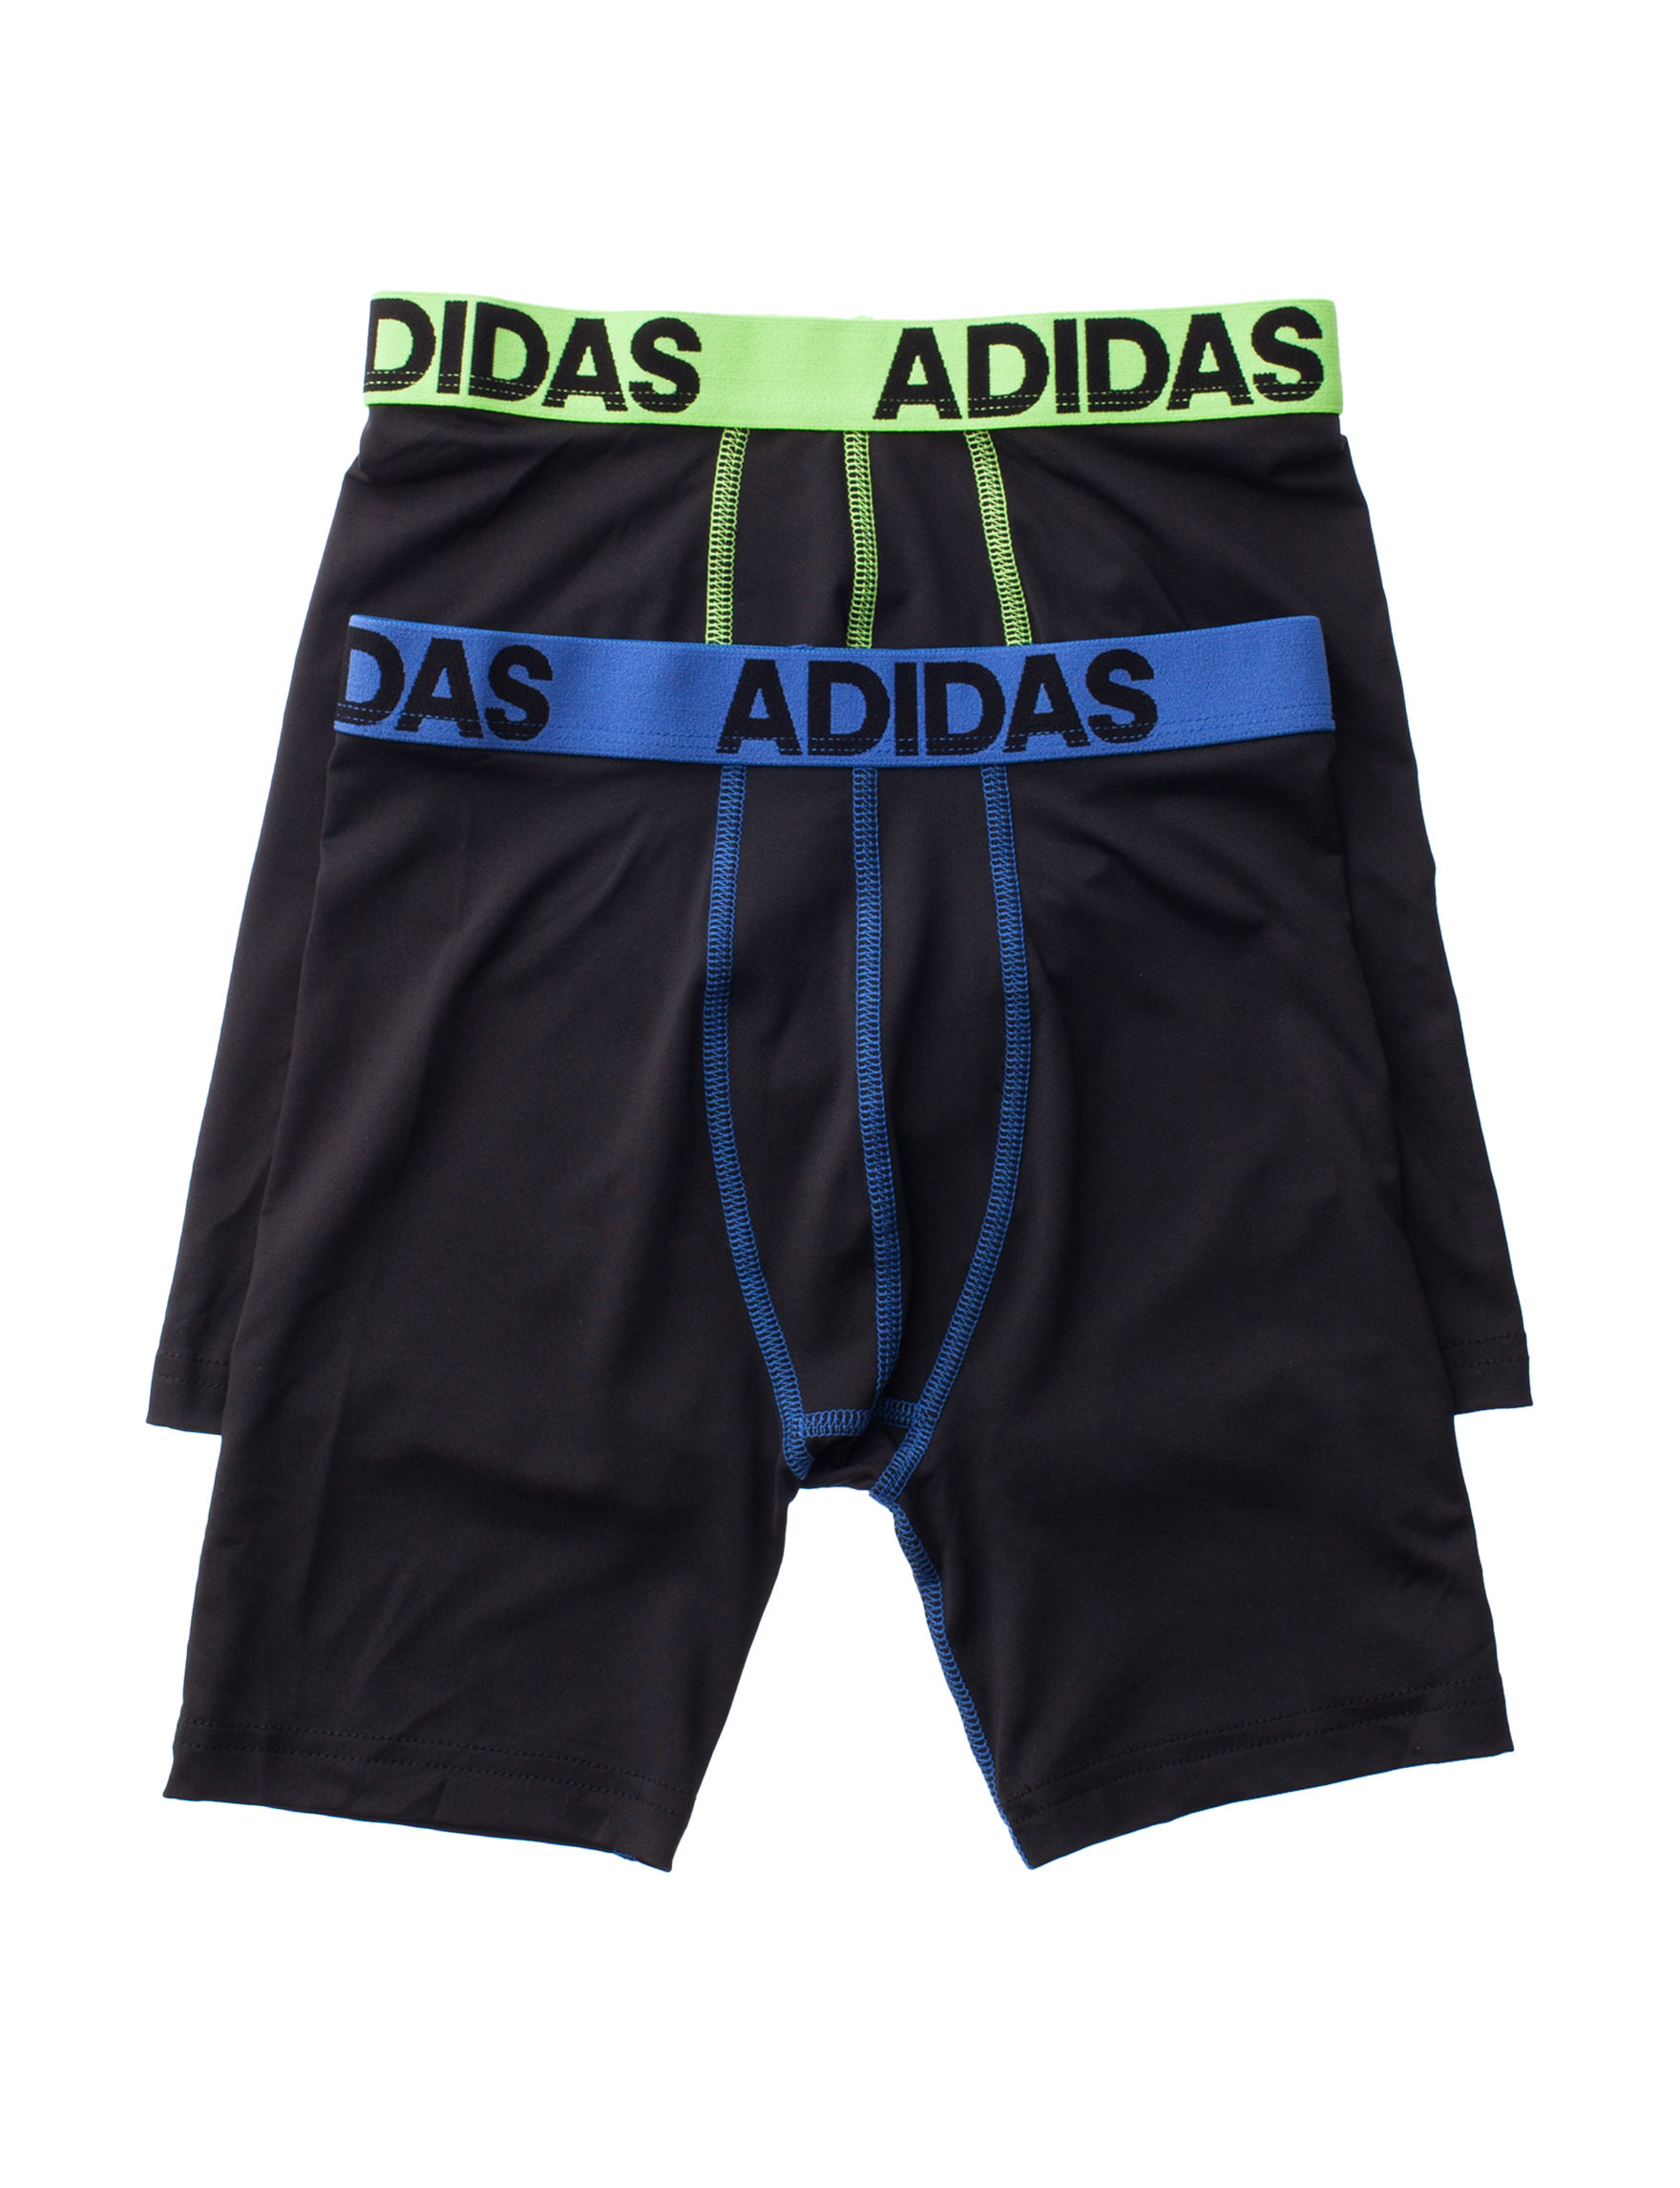 Adidas Black / Multi Boxer Briefs